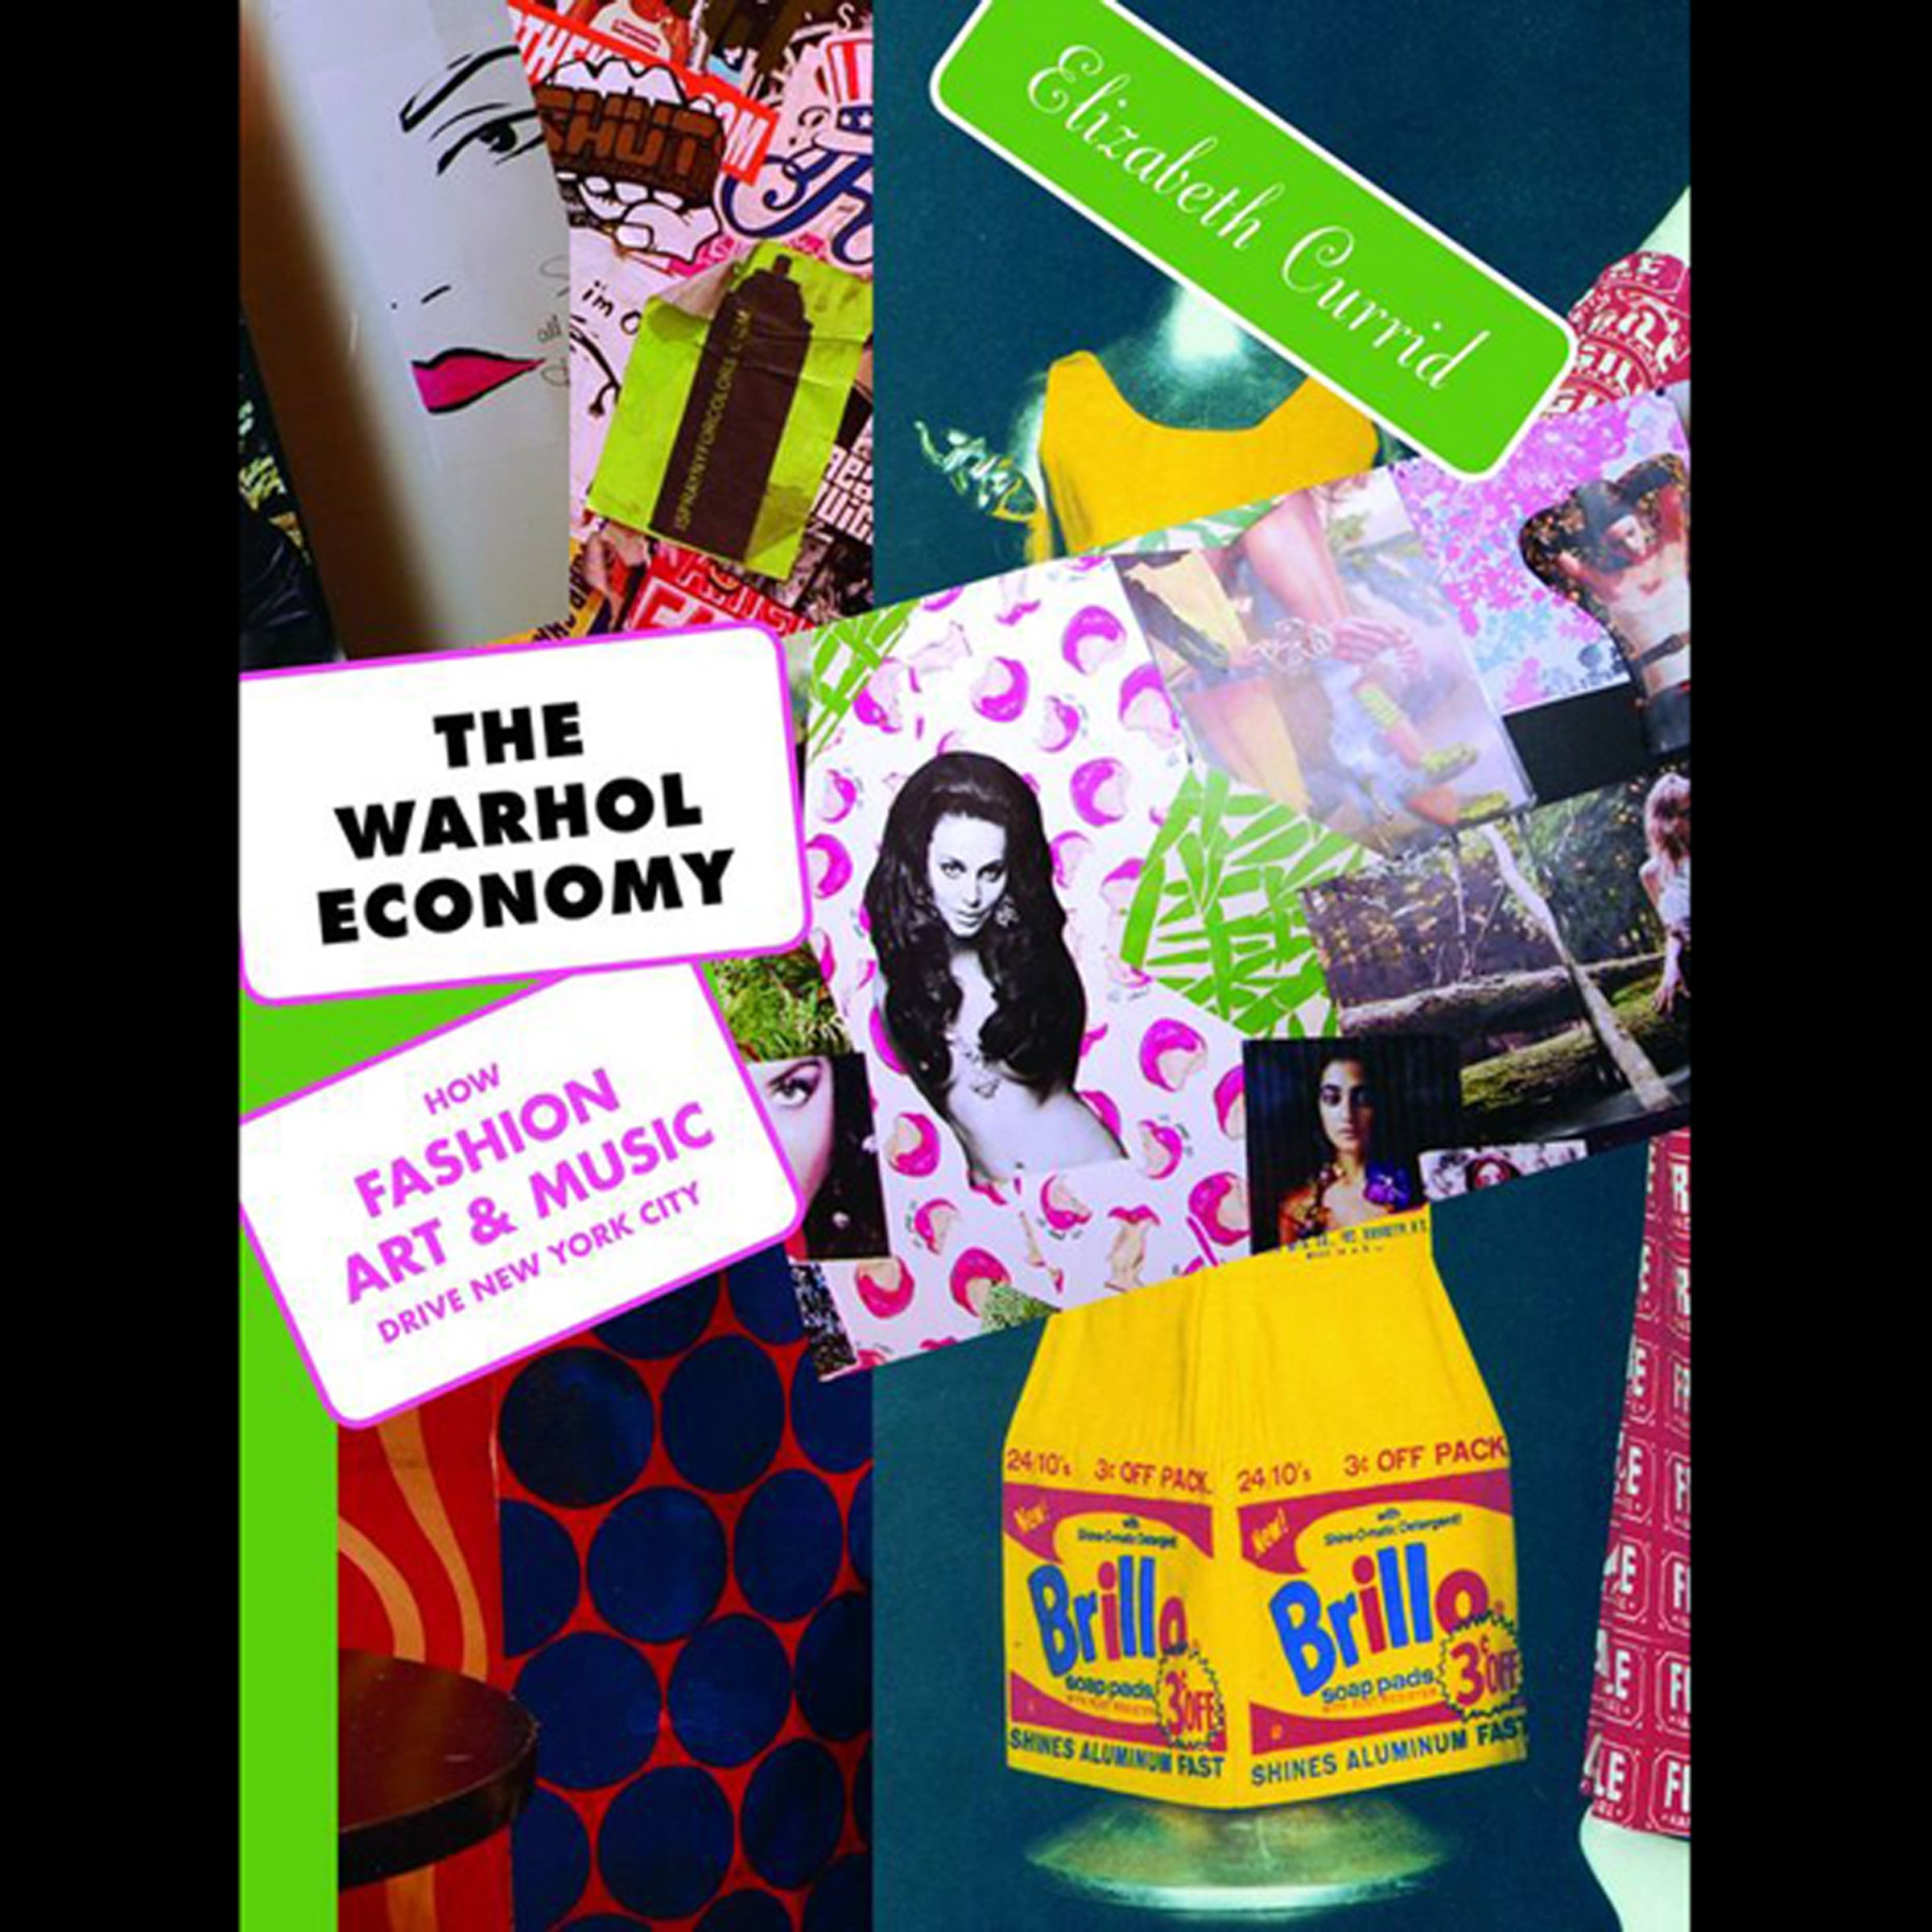 The Warhol Economy: How Fashion, Art, and Music Drive New York City